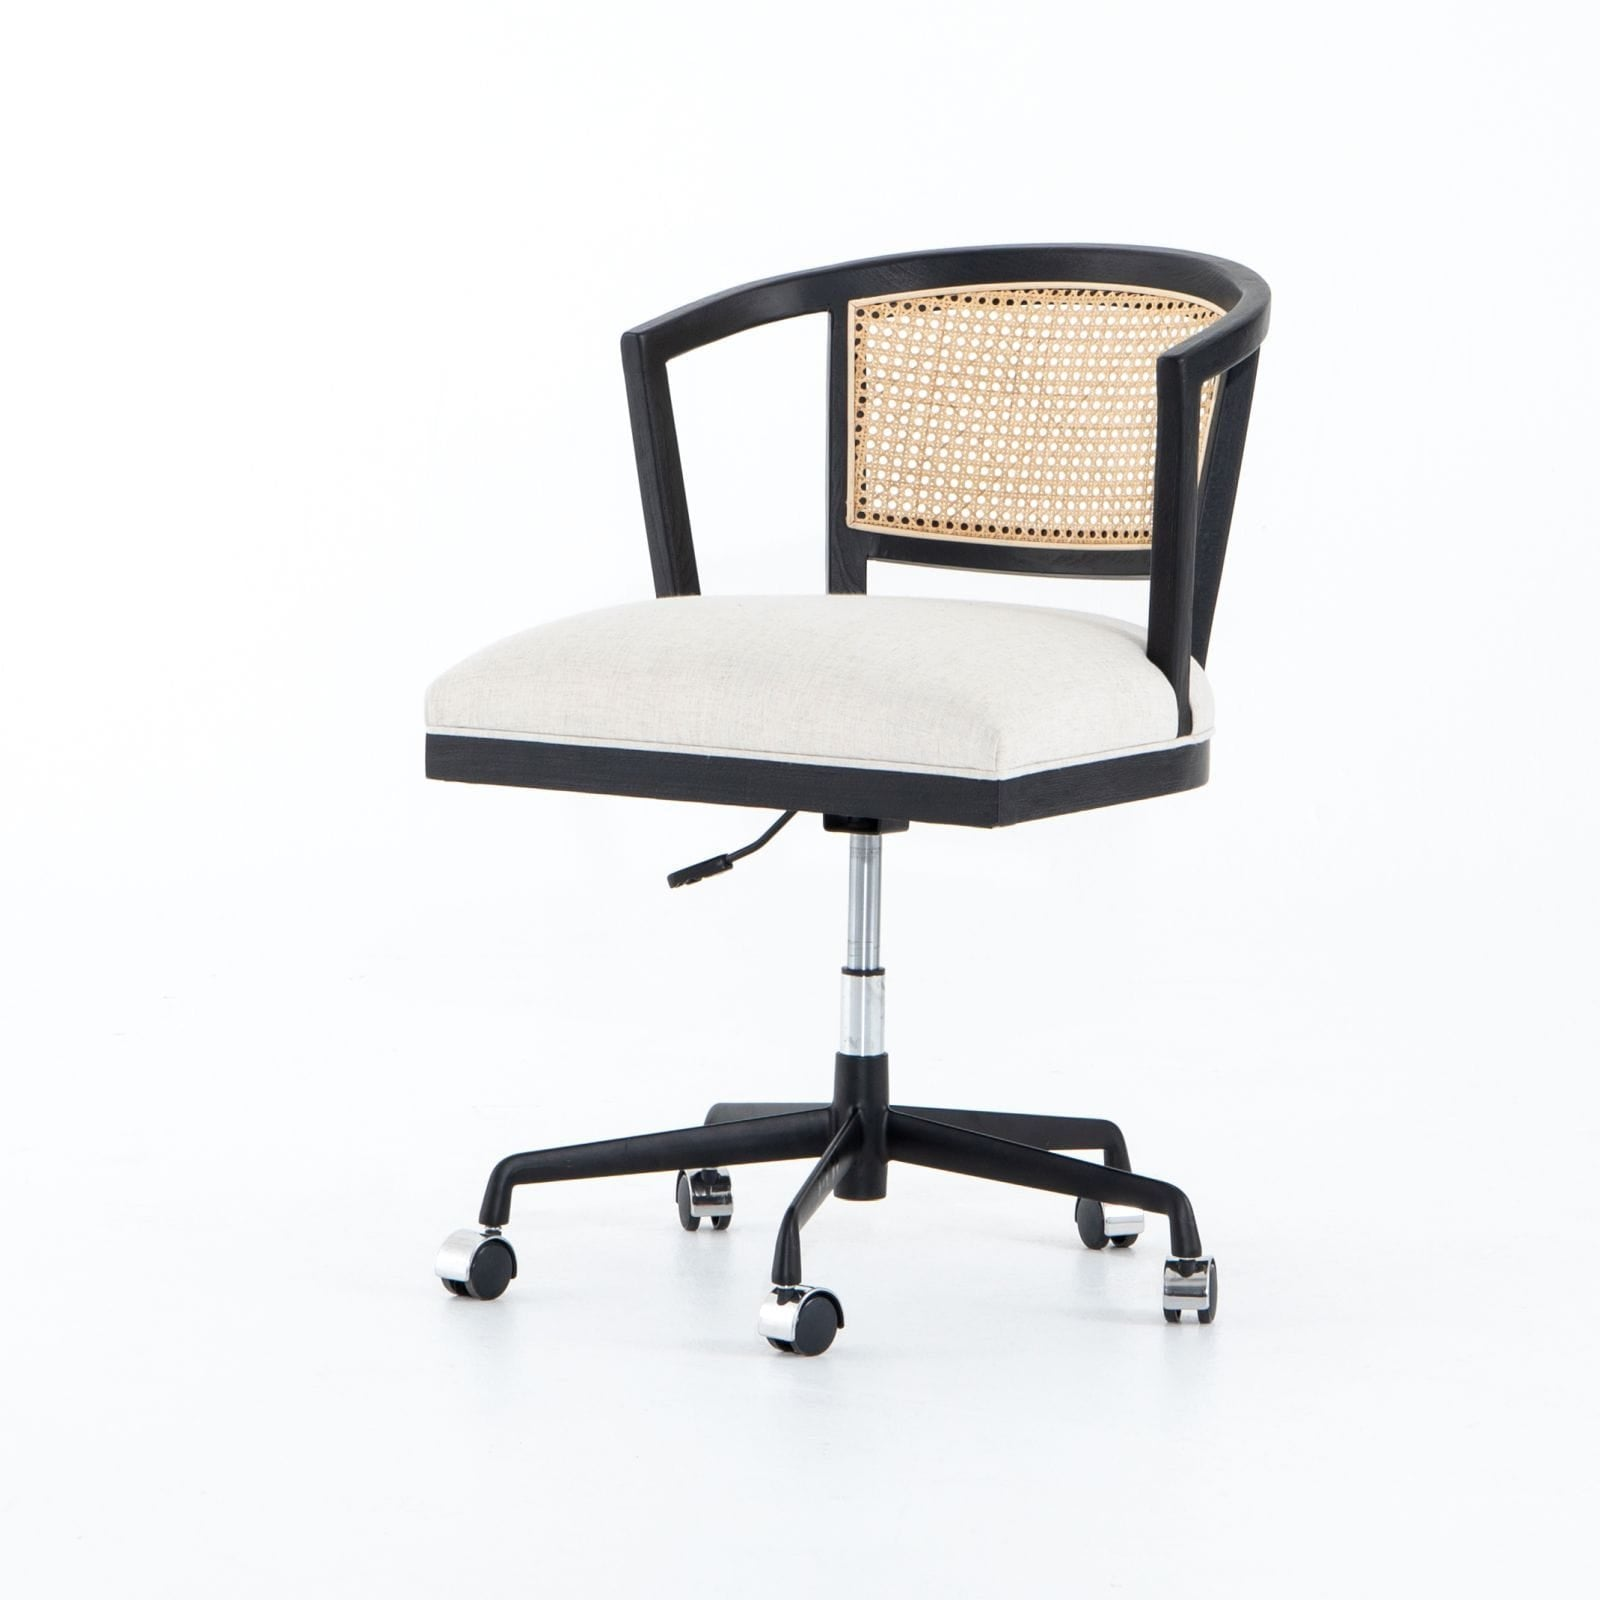 Four Hands Four Hands Alexa Desk Chair - Available in 2 Colors Savile Flax CTOW-0040203-084P